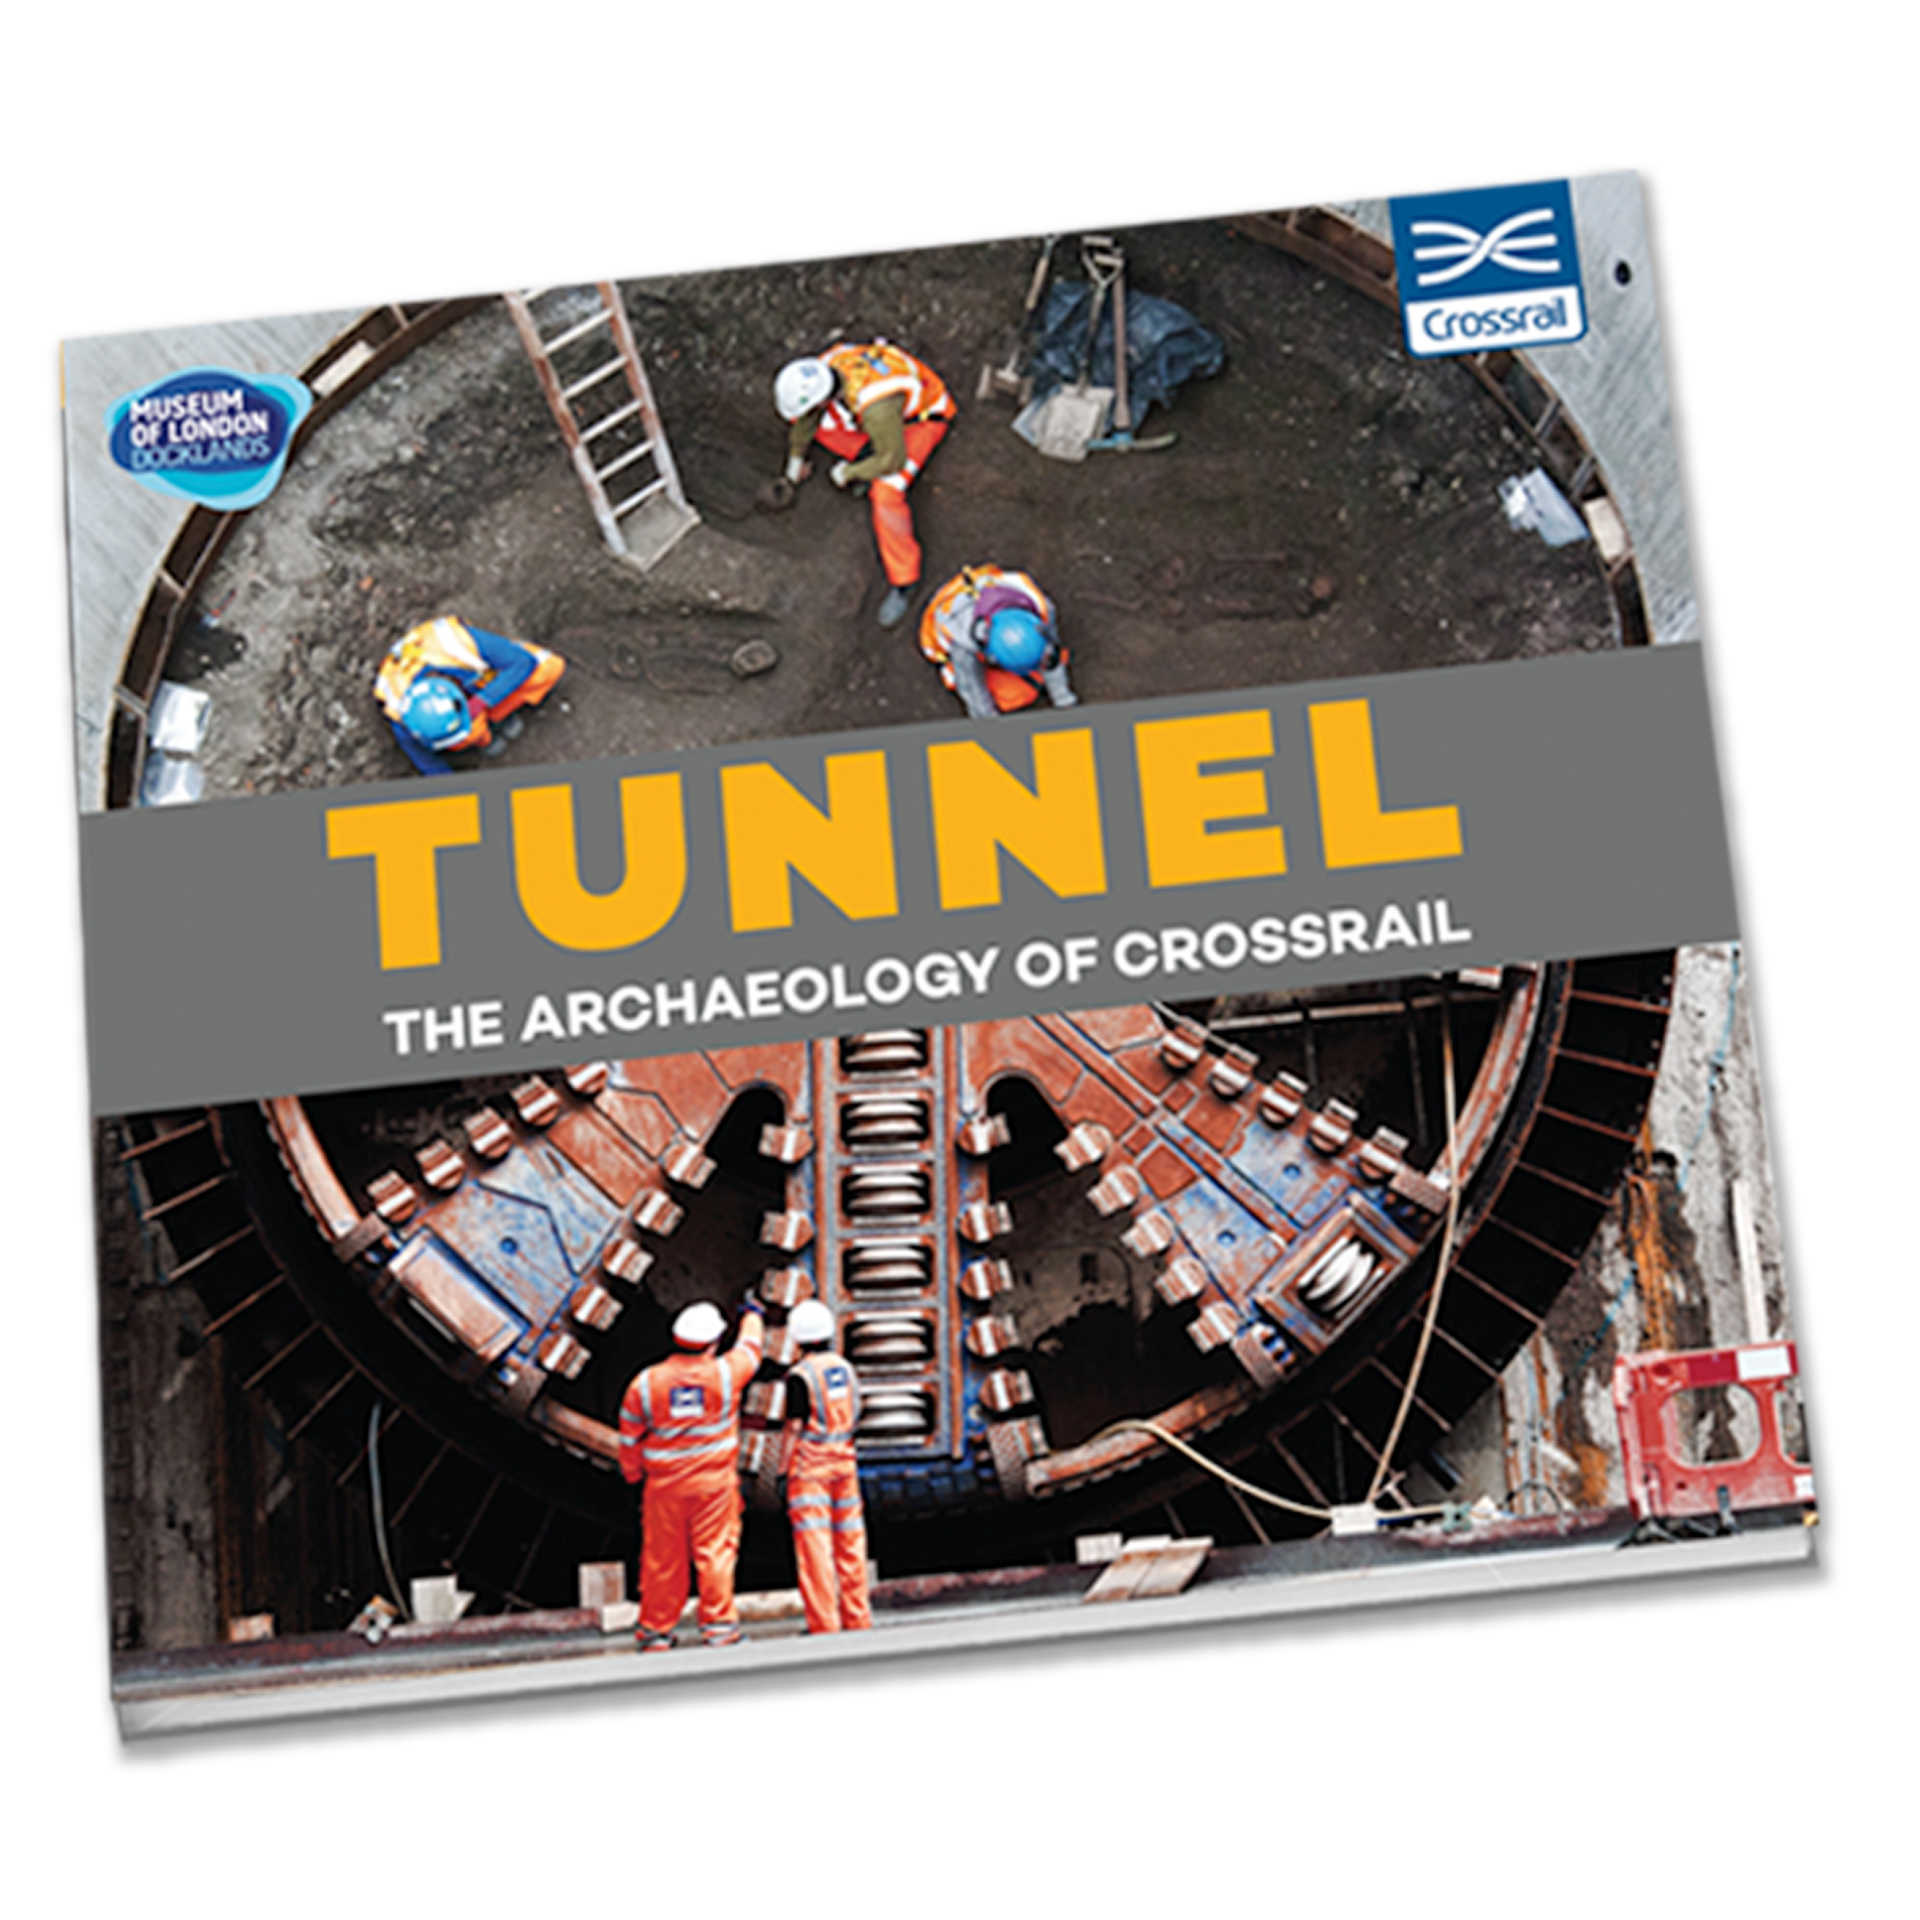 Tunnel: The Archaeology of Crossrail_book cover